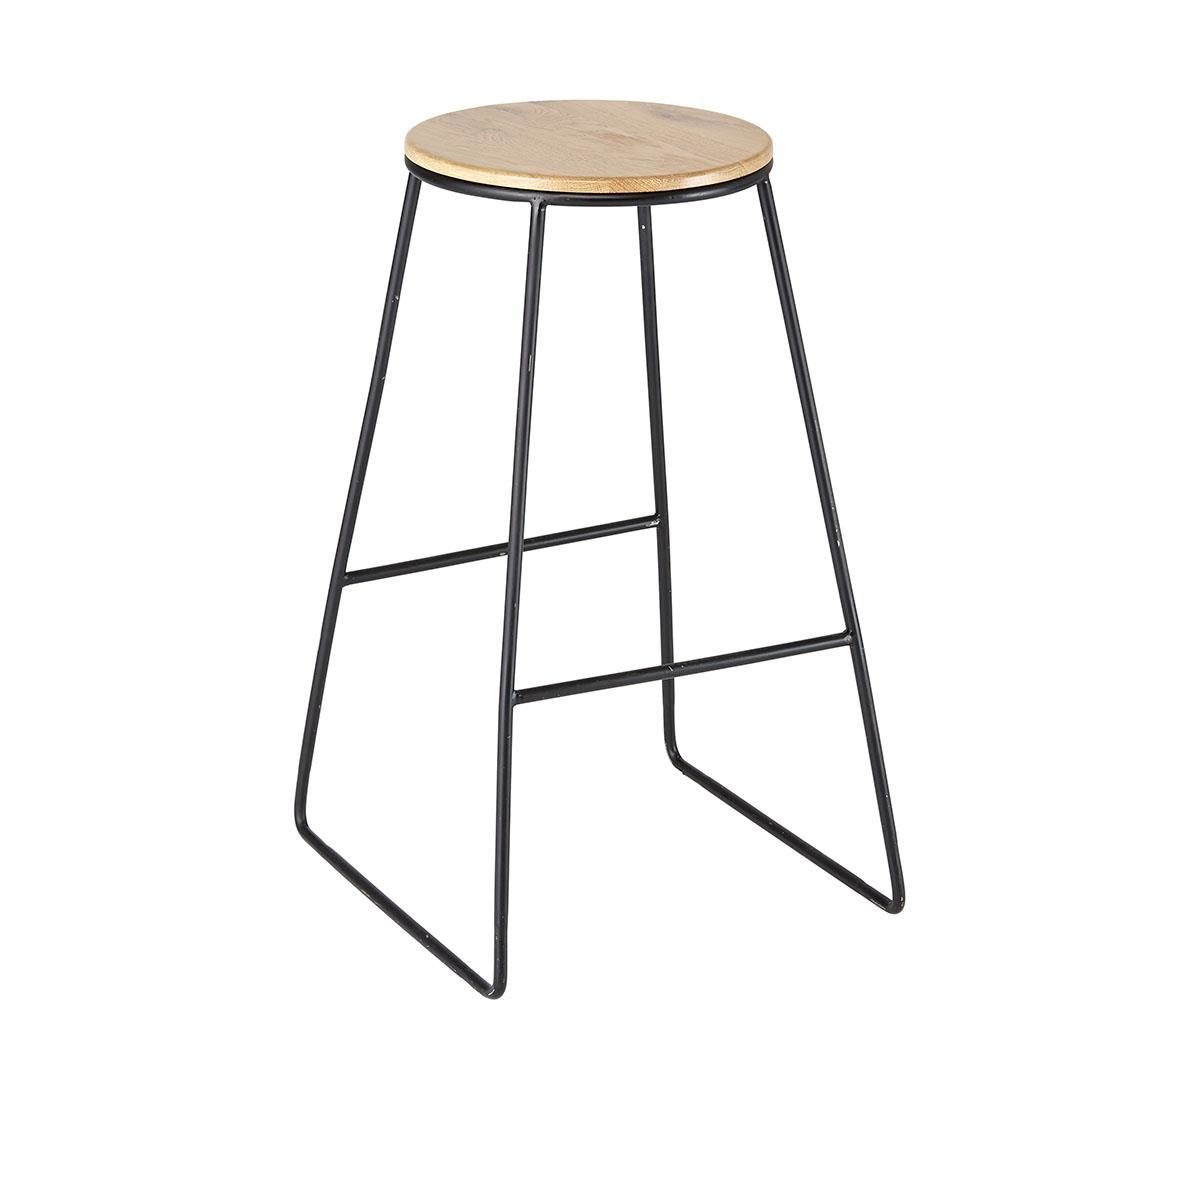 Black Industrial Stool  Kmart would be good plant stand on deck